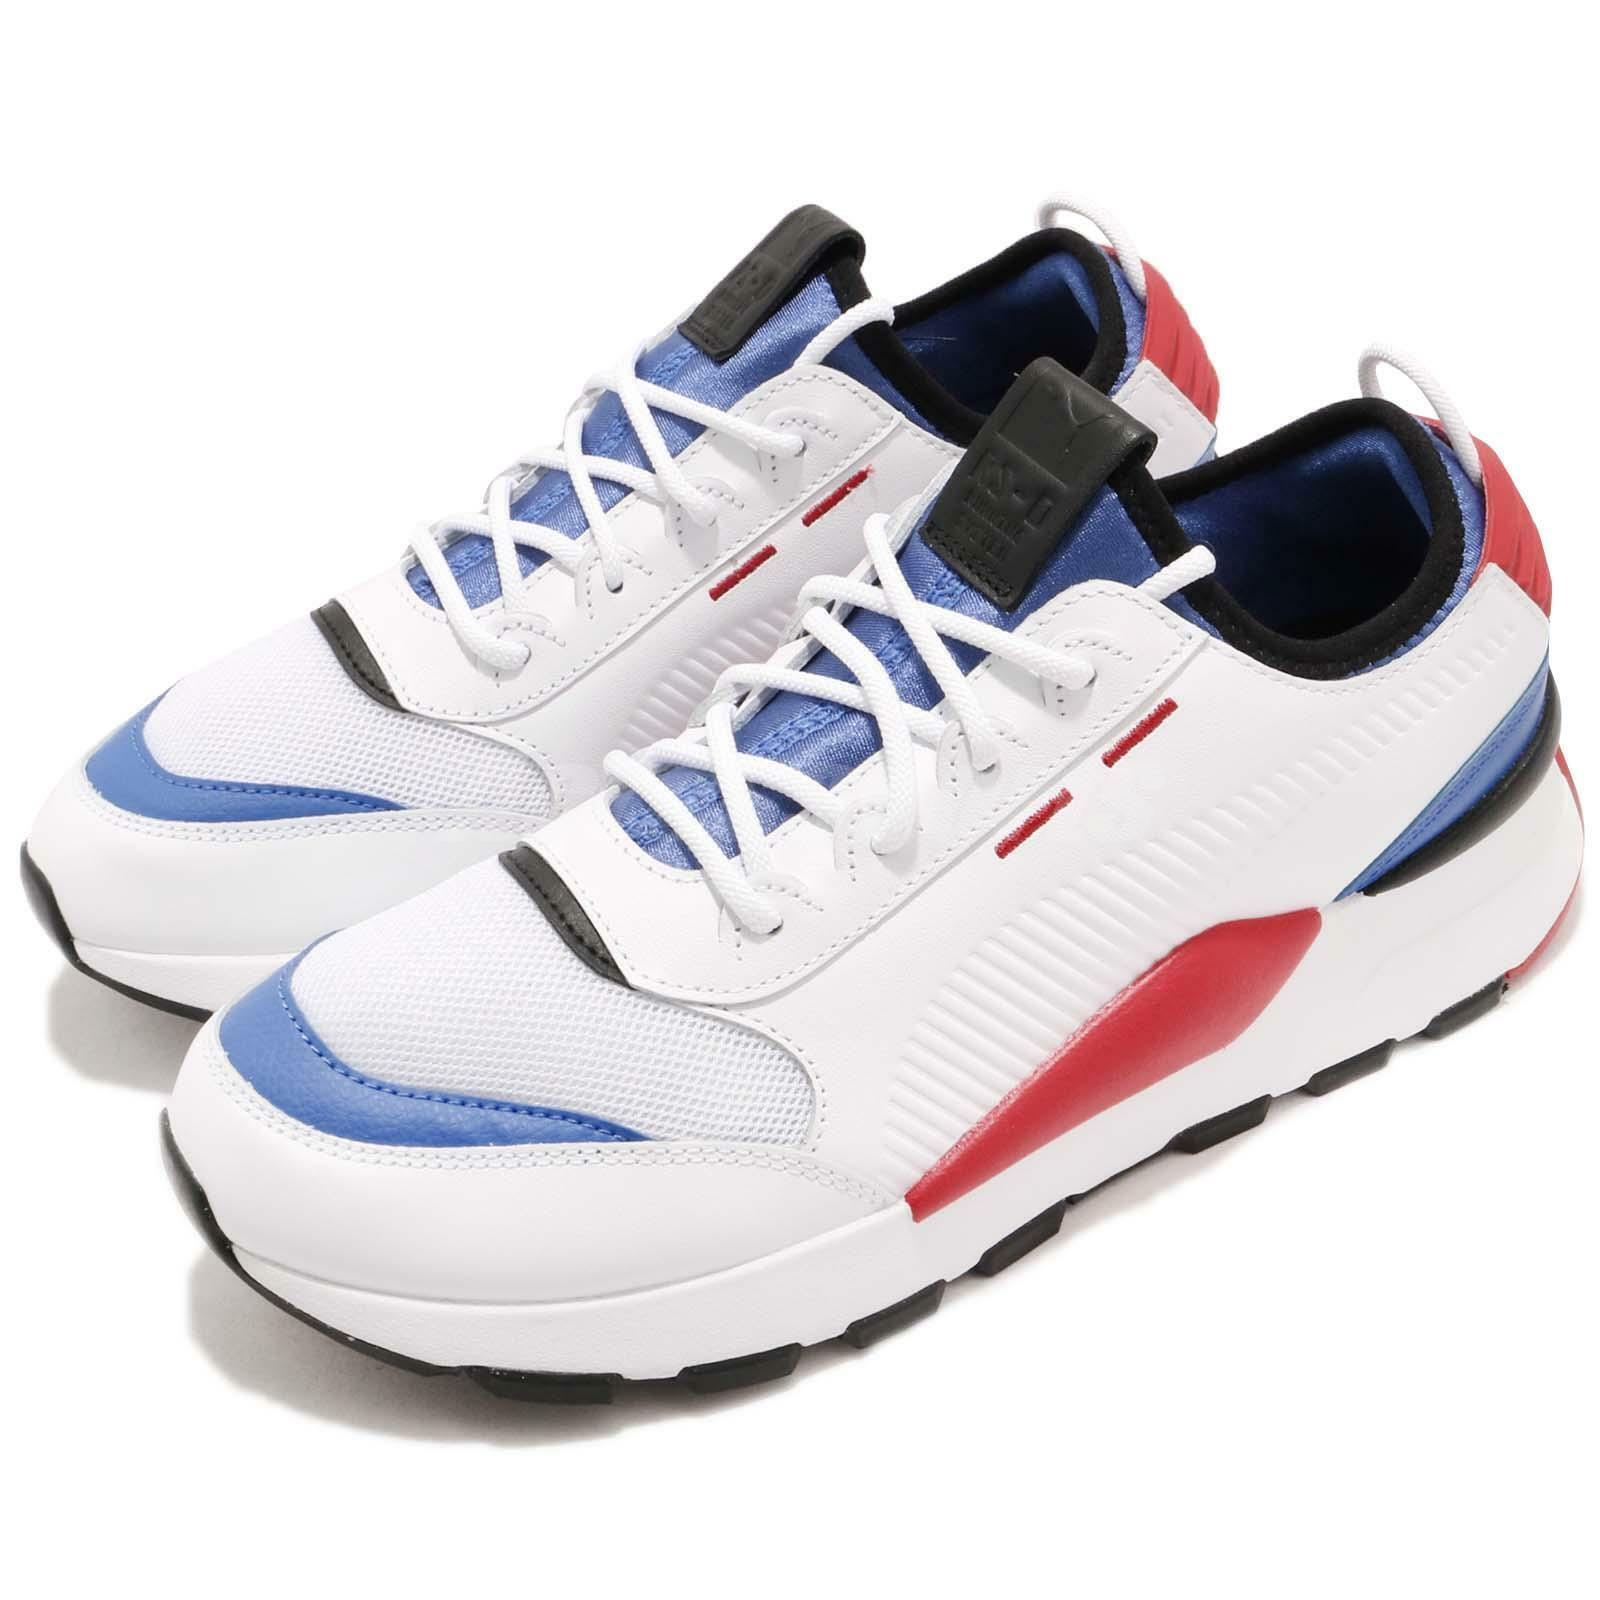 Puma RS-0 Sound Play Running System White blueee Red Men Lifestyle shoes 366890-01